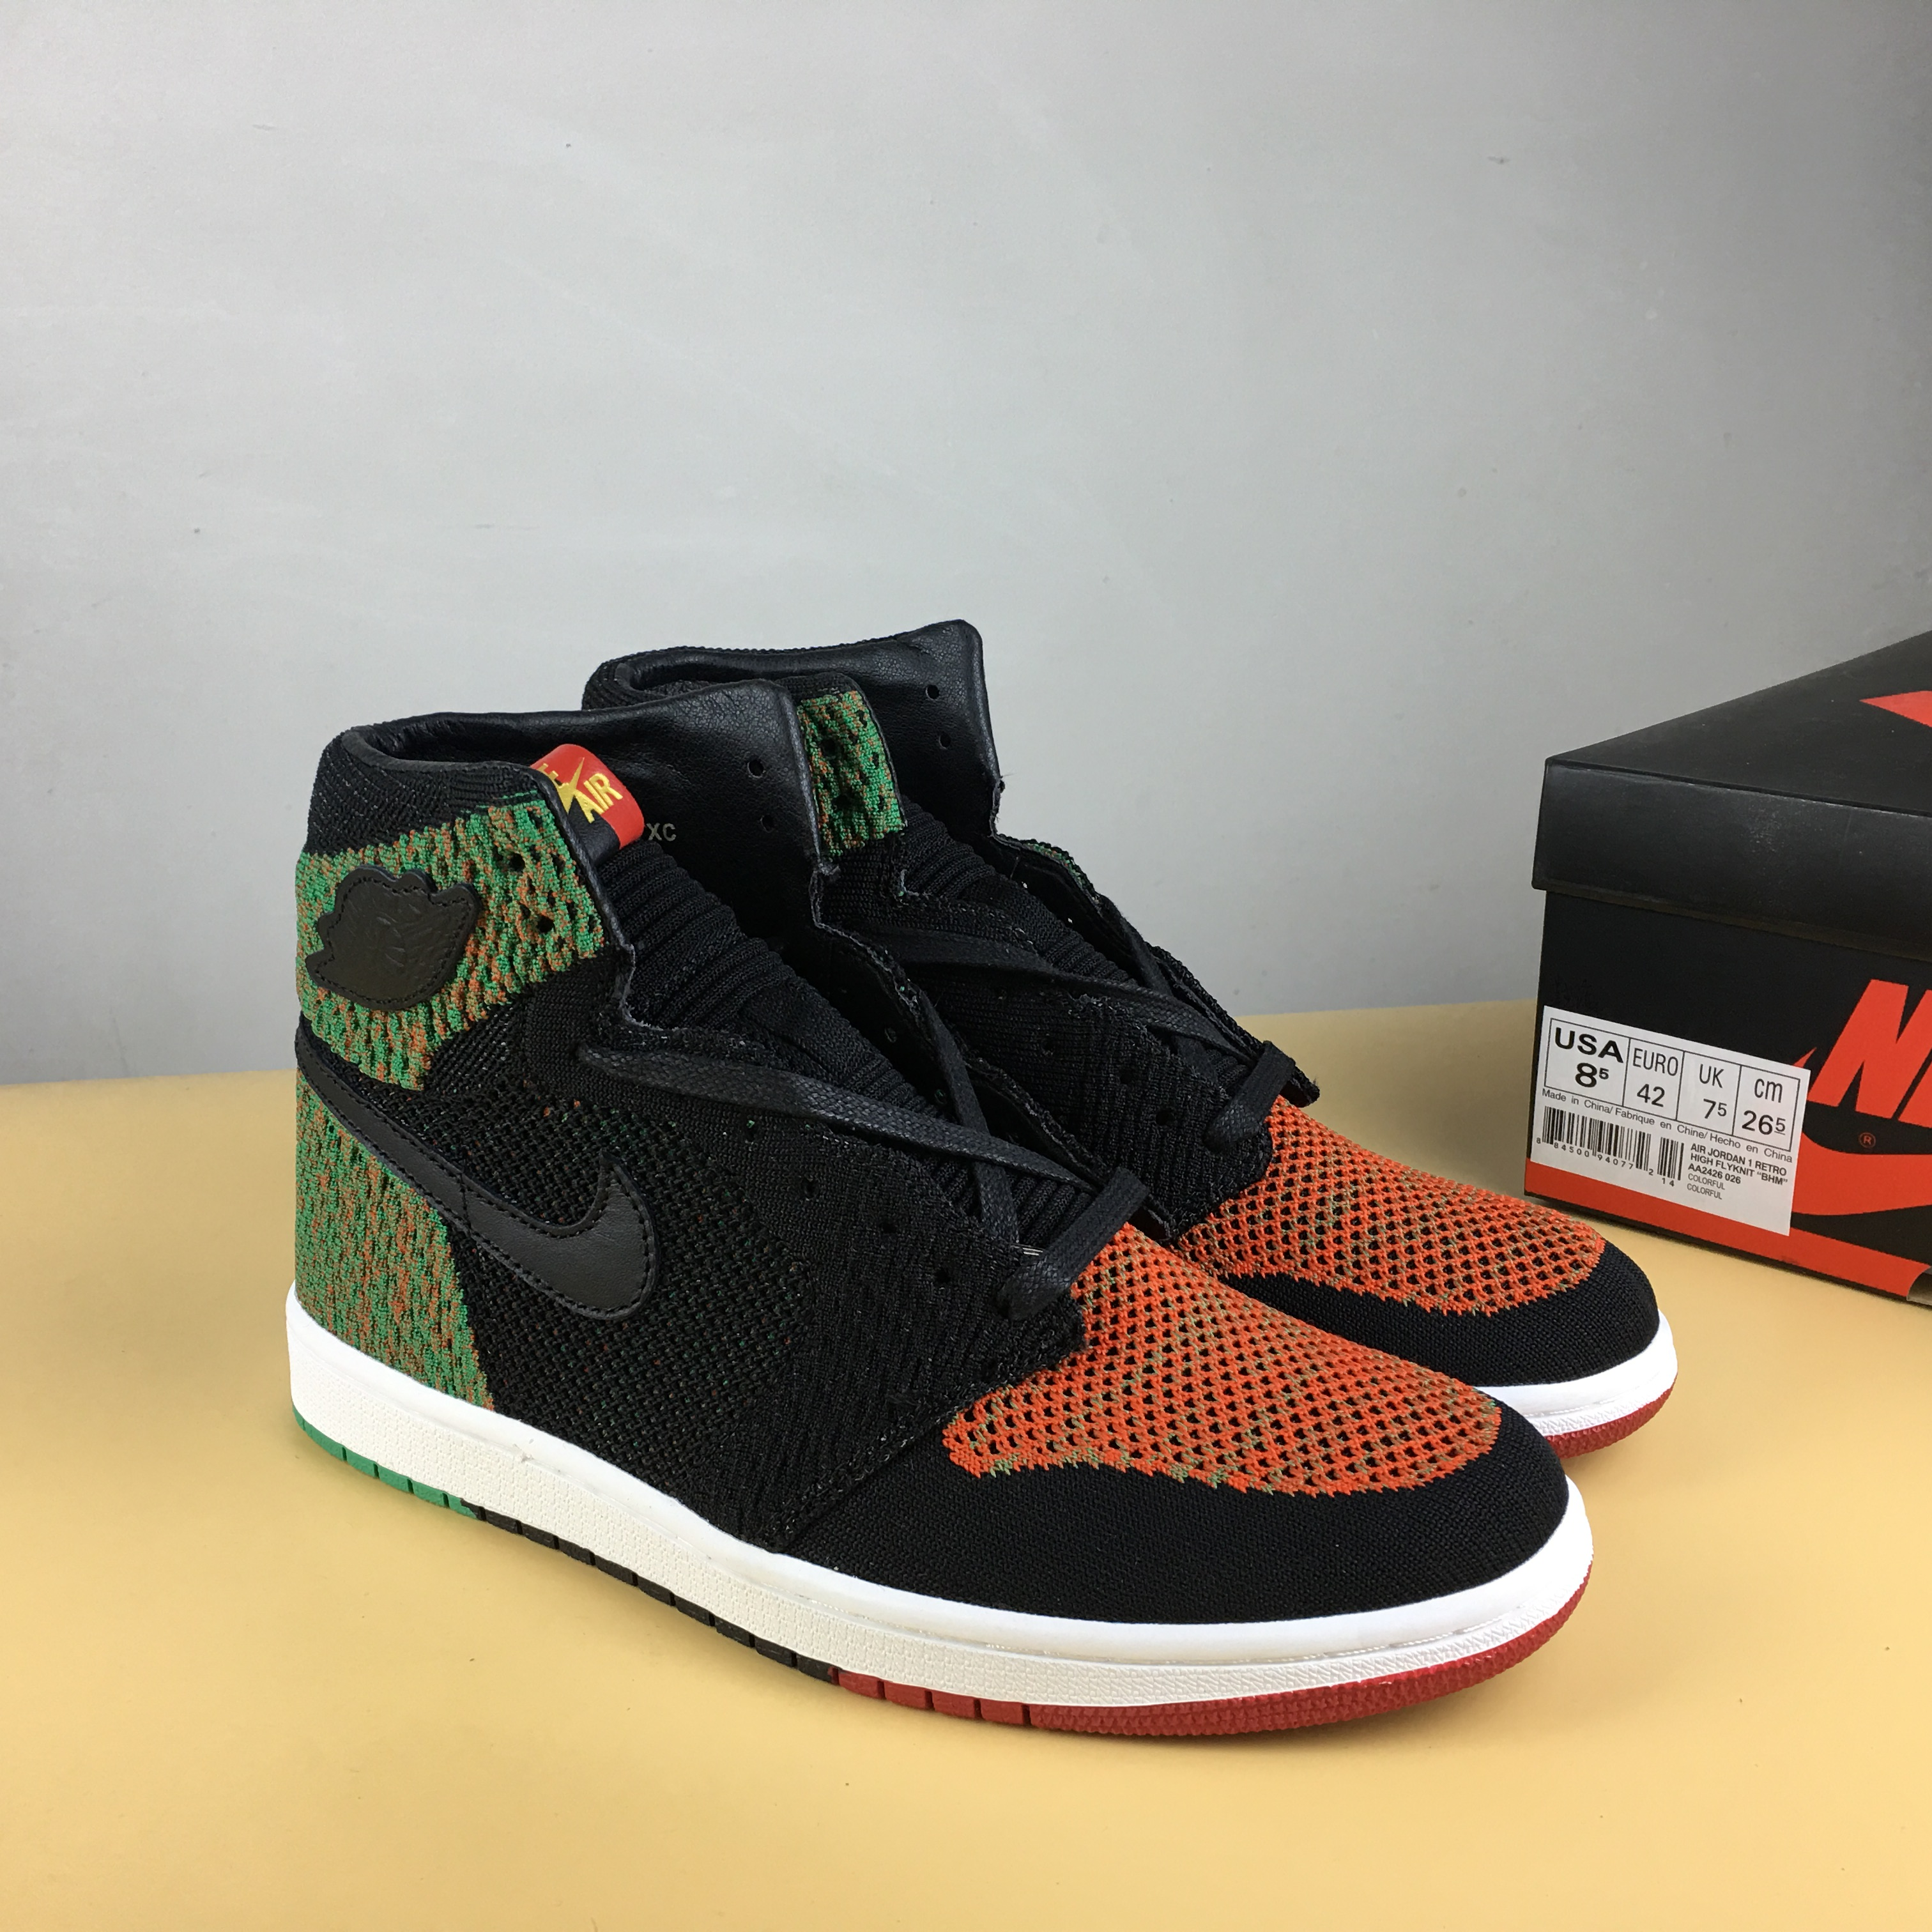 Air Jordan 1 Flyknit BHM Black Orange Green Shoes